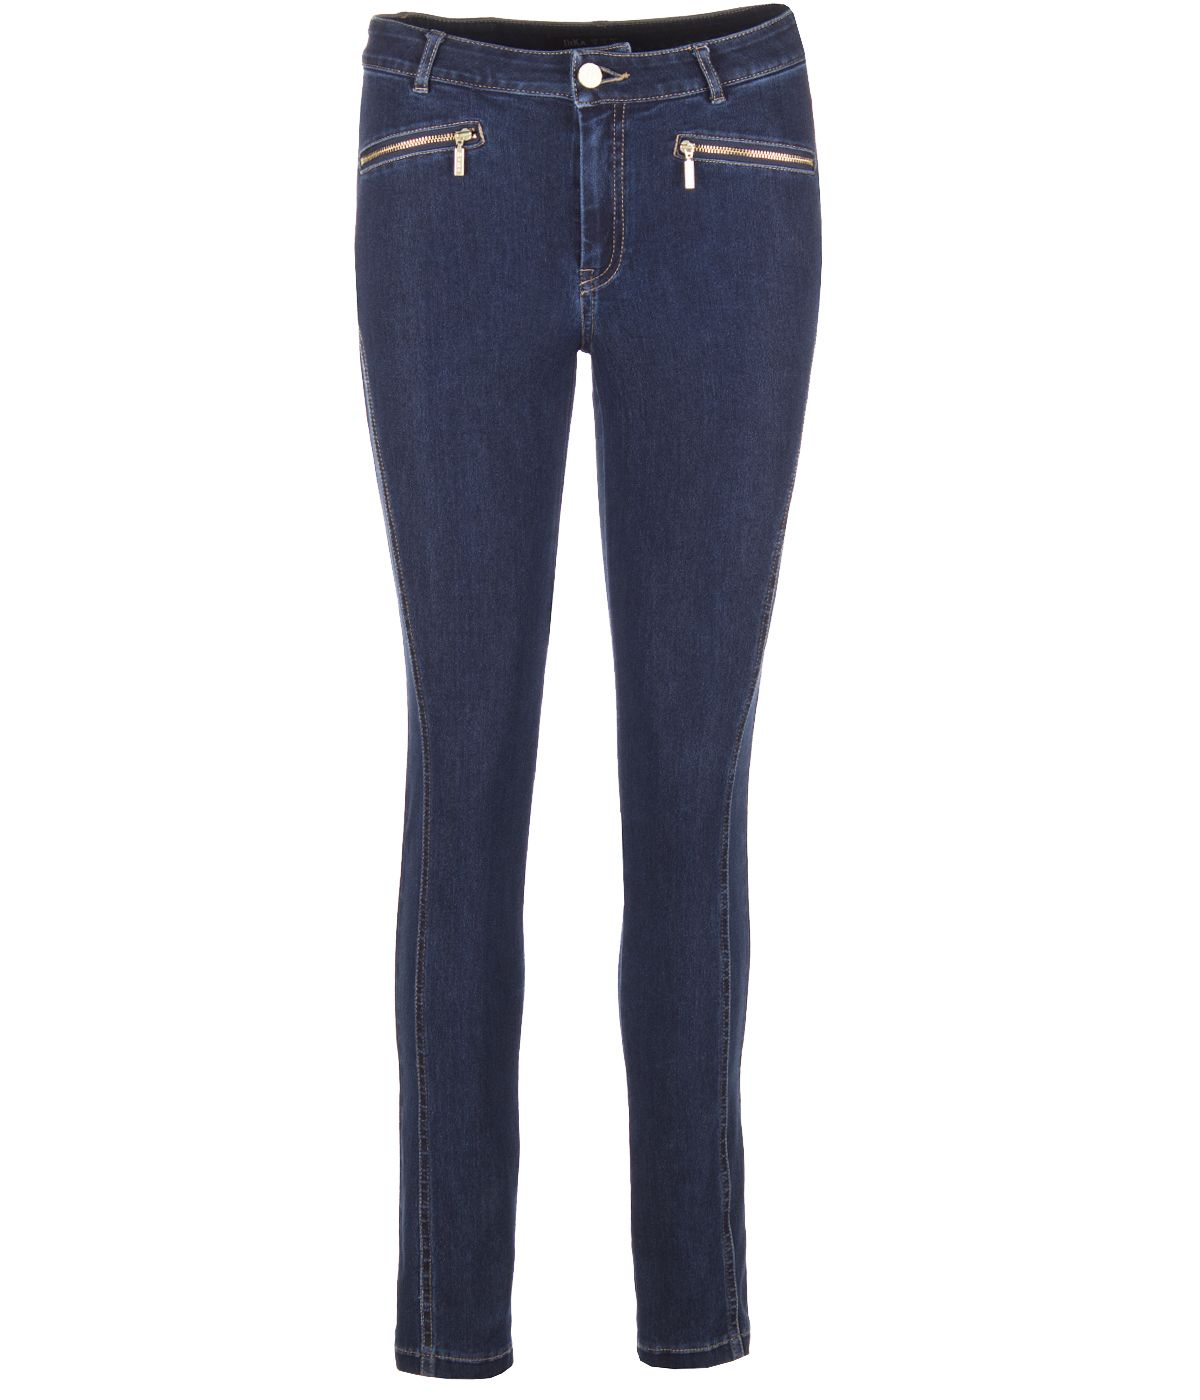 SLIM FIT JEANS WITH 2 ZIPPERS 0